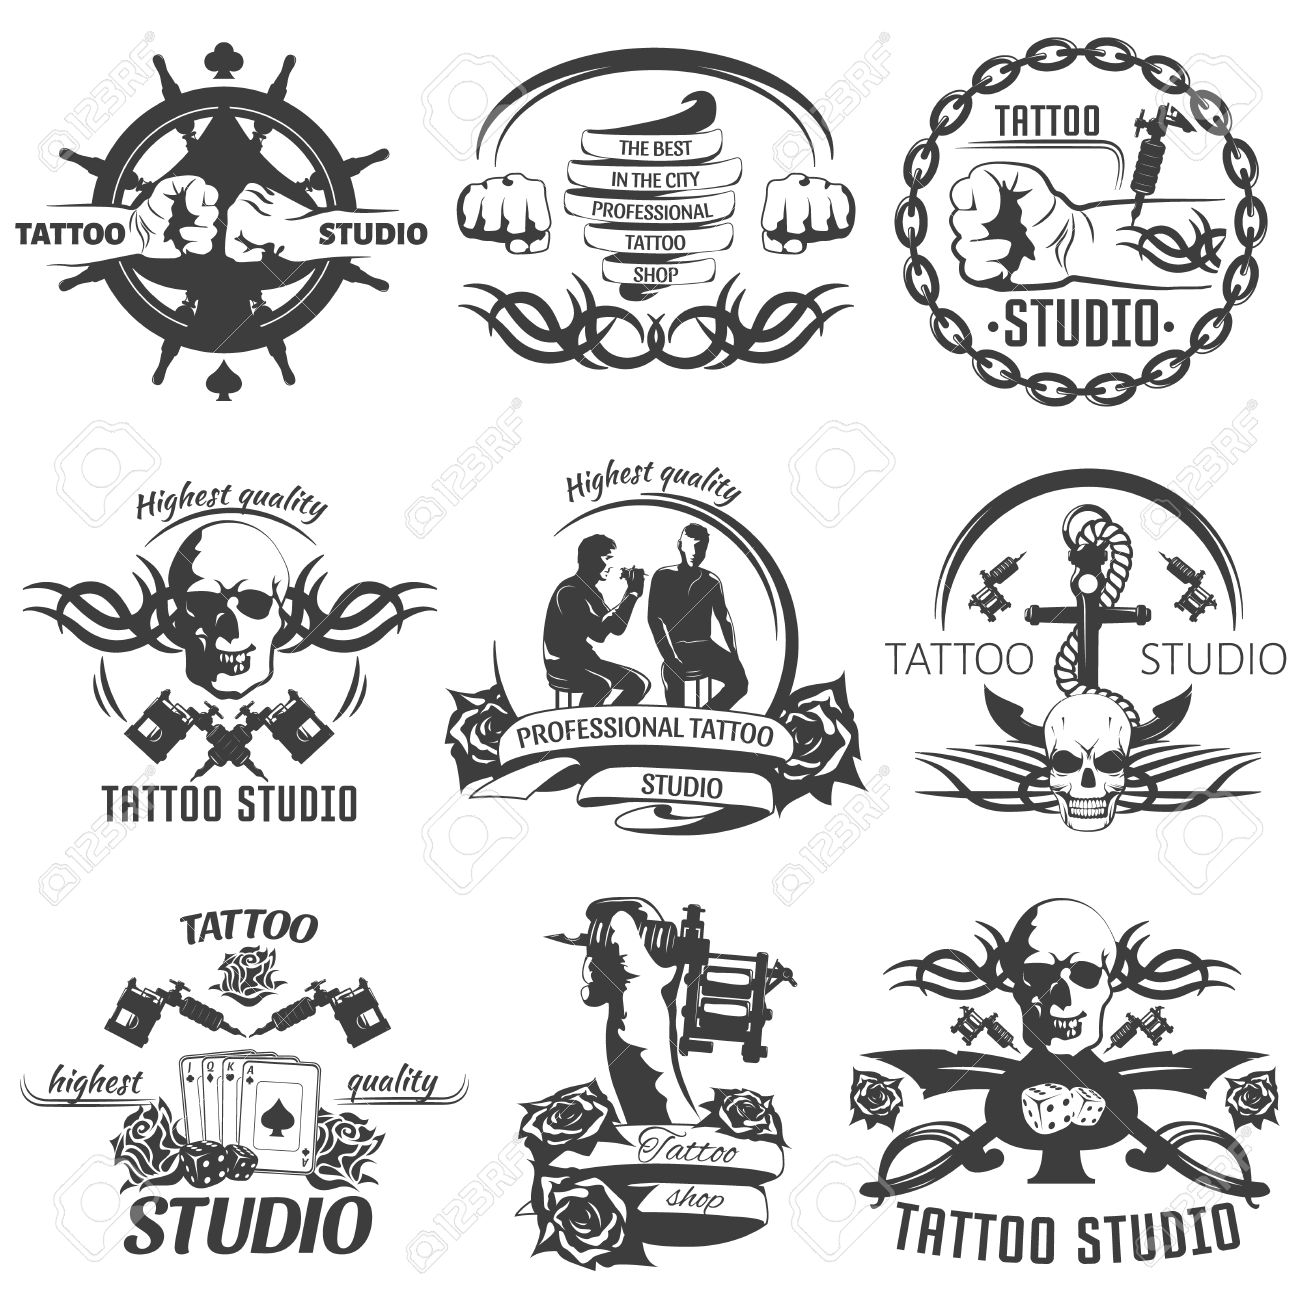 Tattoo Studio Black White Emblems With Master Anchor Rudder Playing